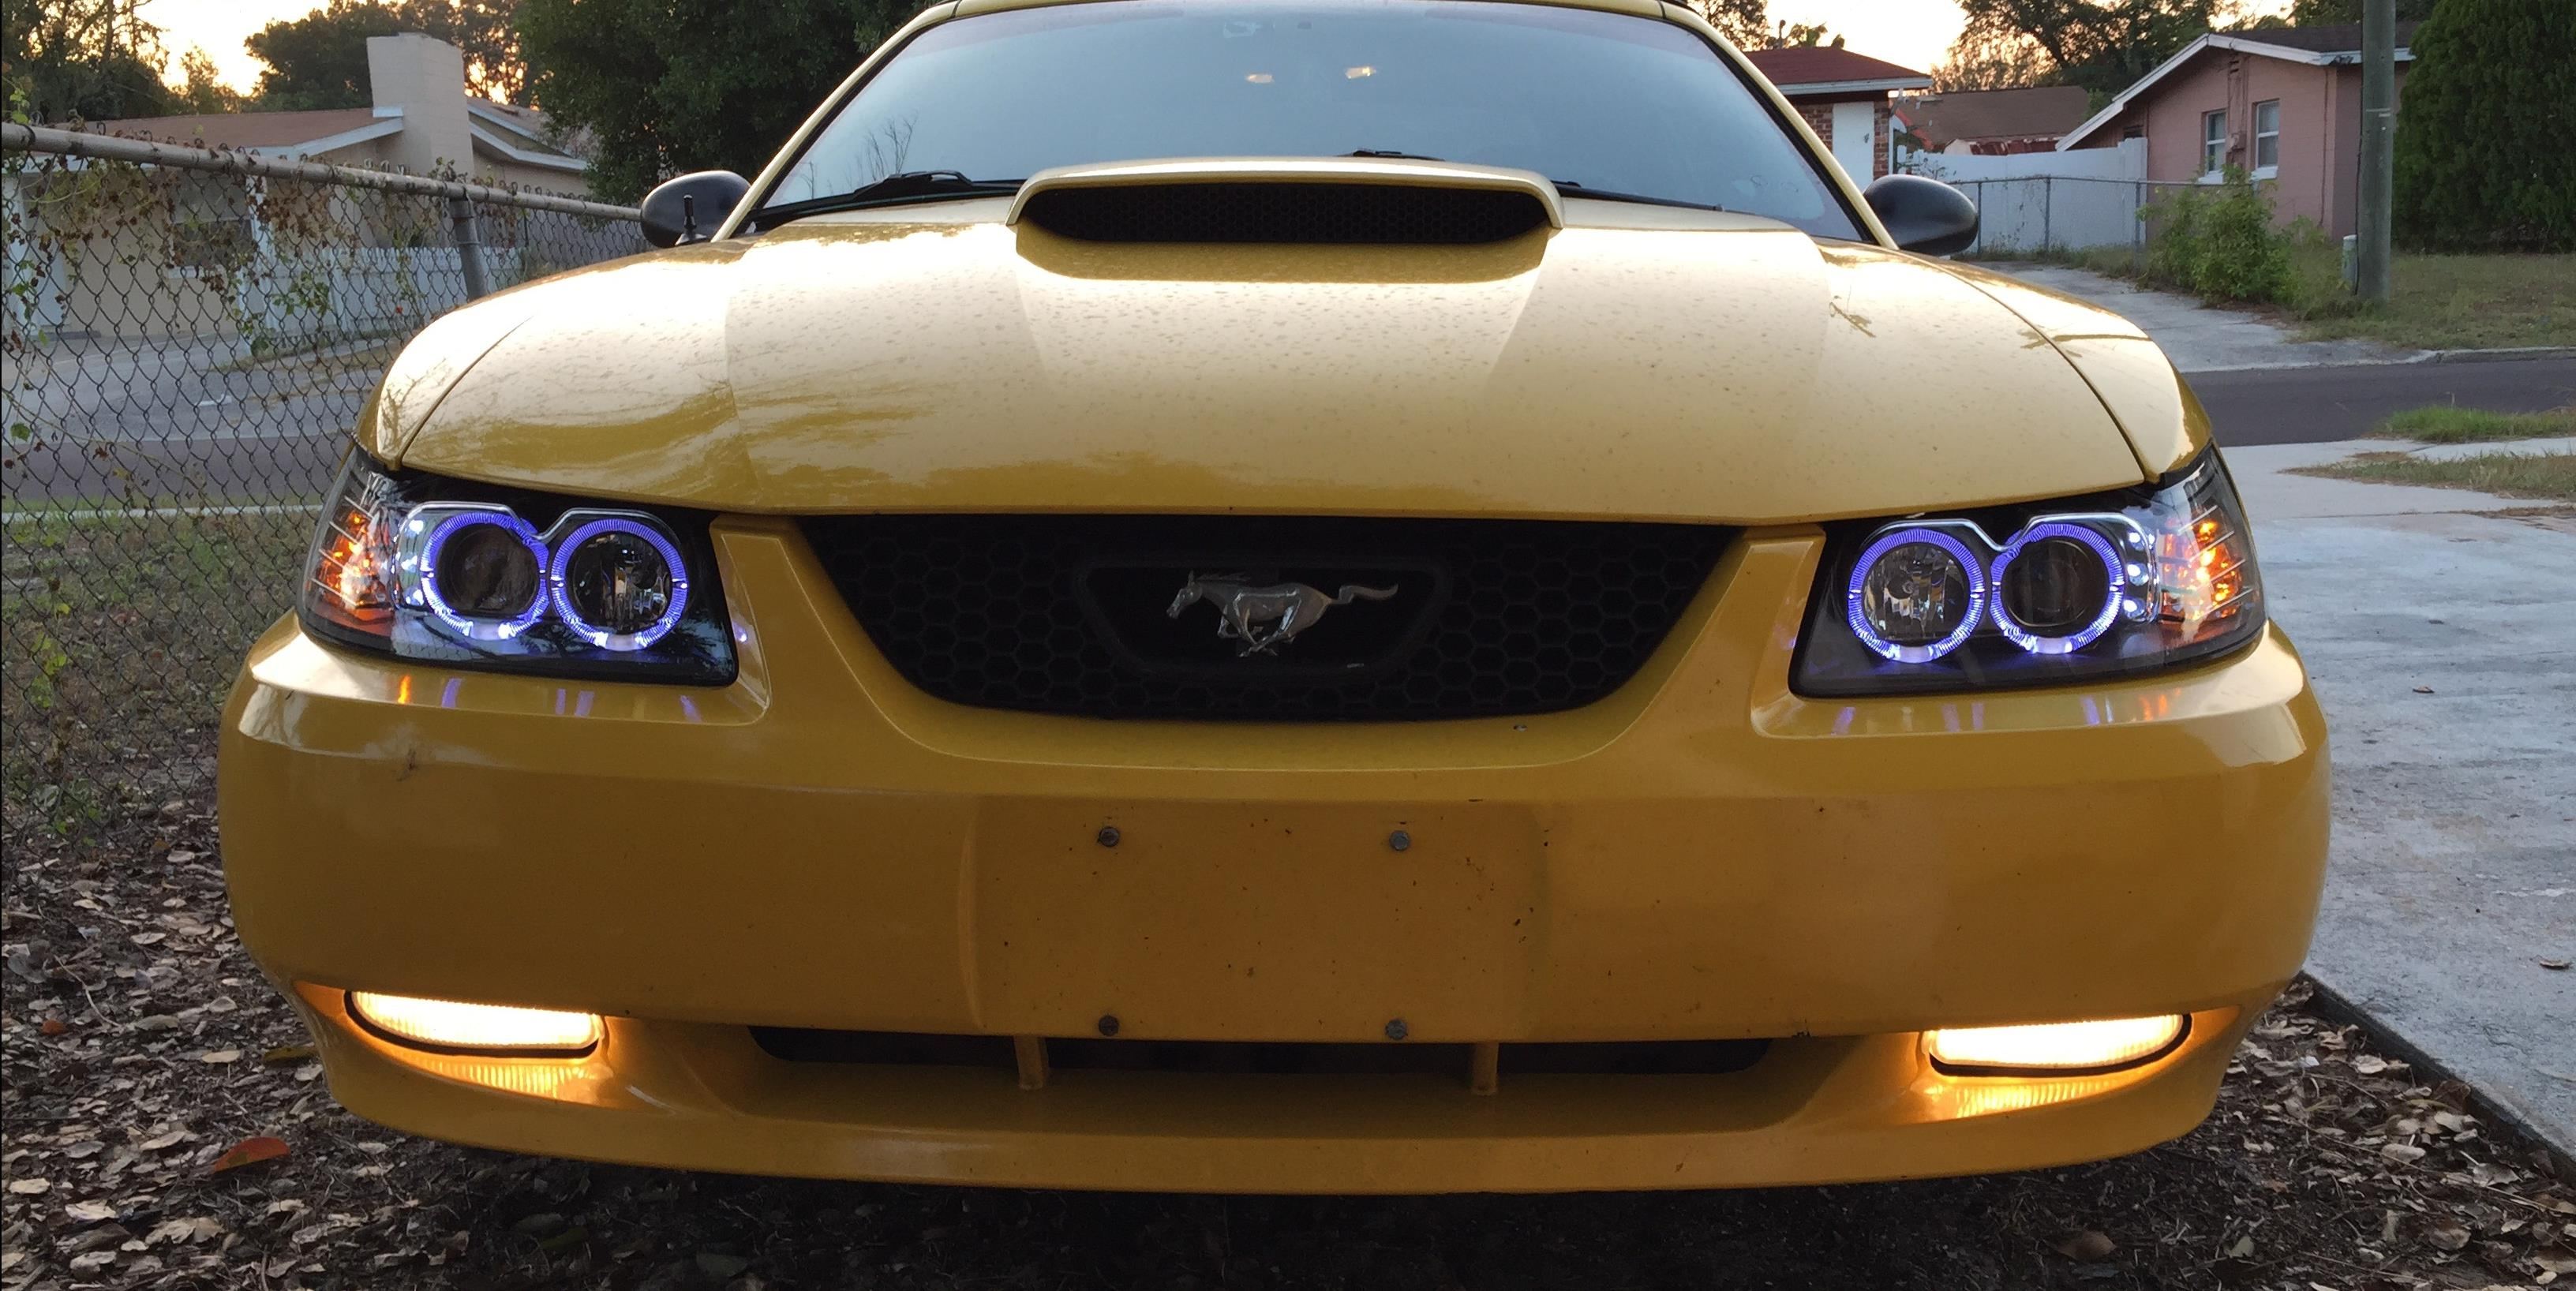 Dustawnry 2004 Ford Mustang